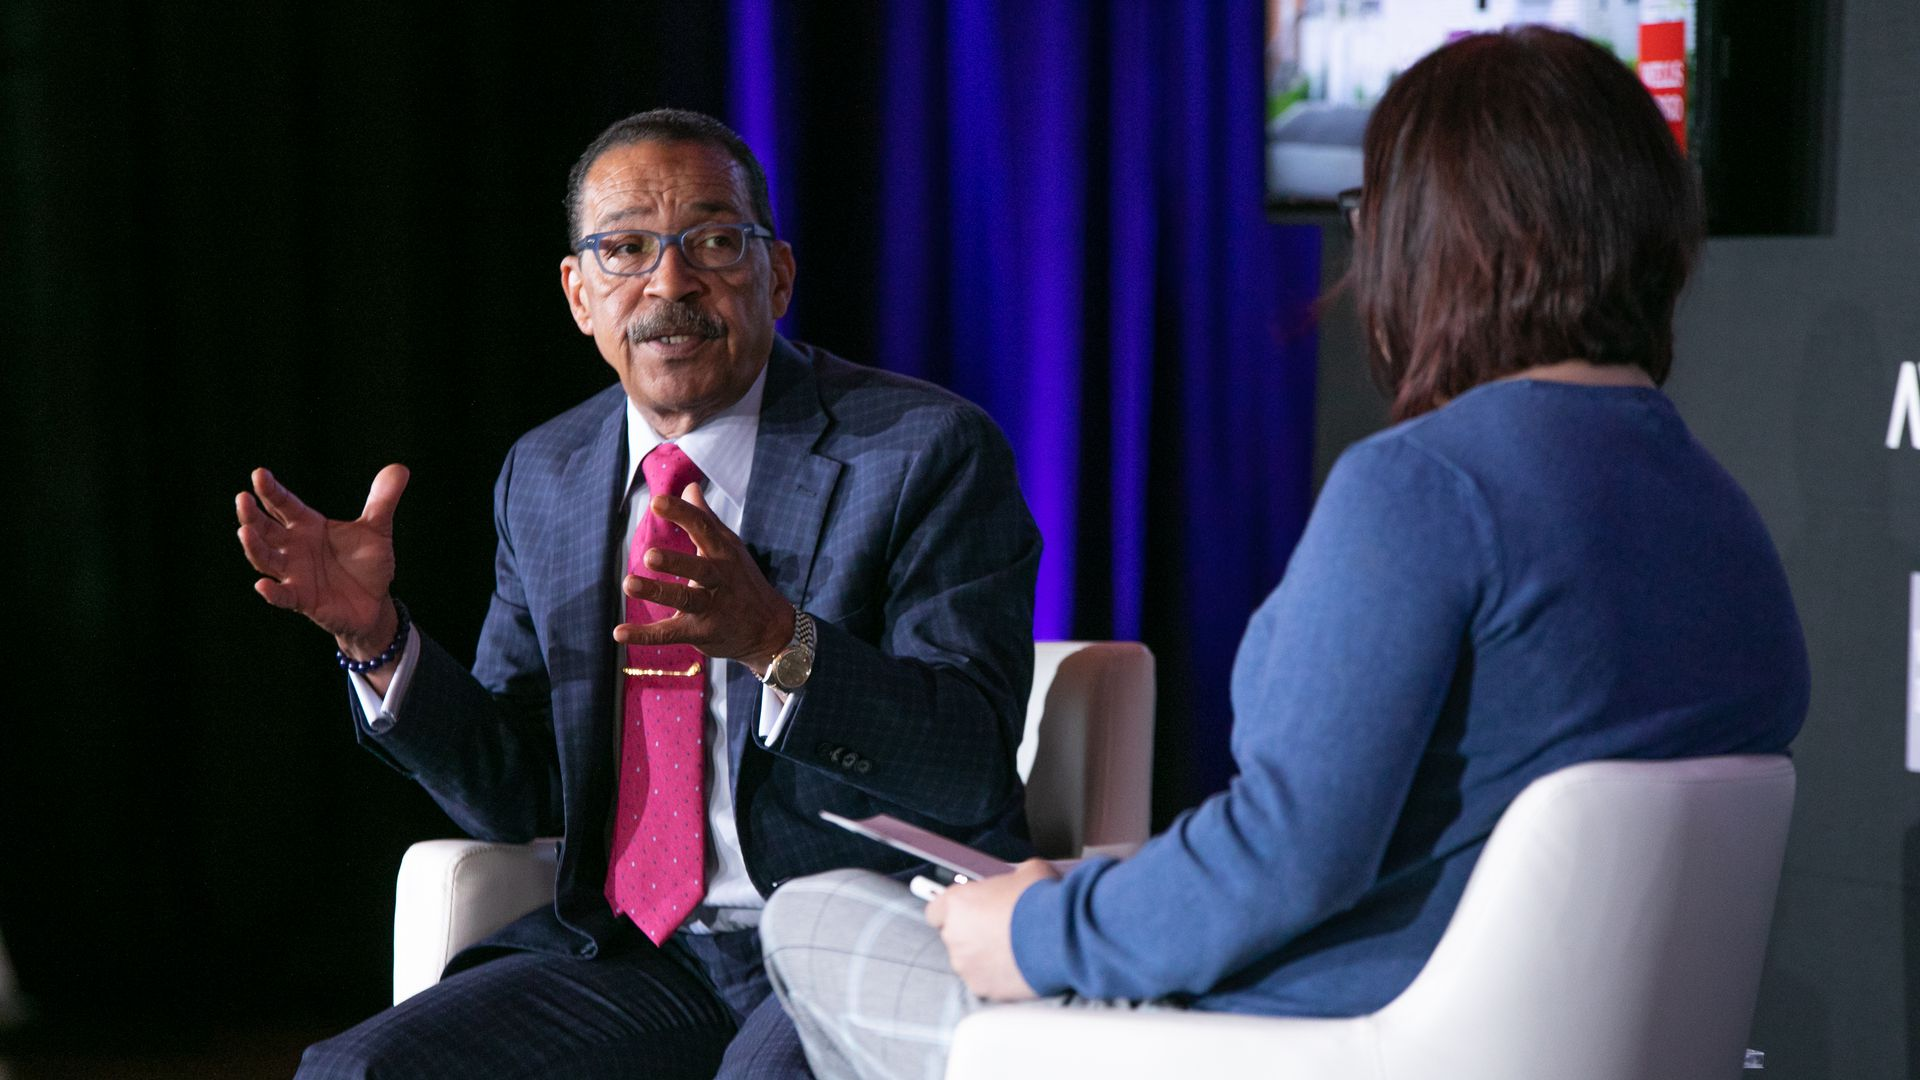 Mr. Herb J. Wesson, Jr. in conversation with Axios' Ina Fried.